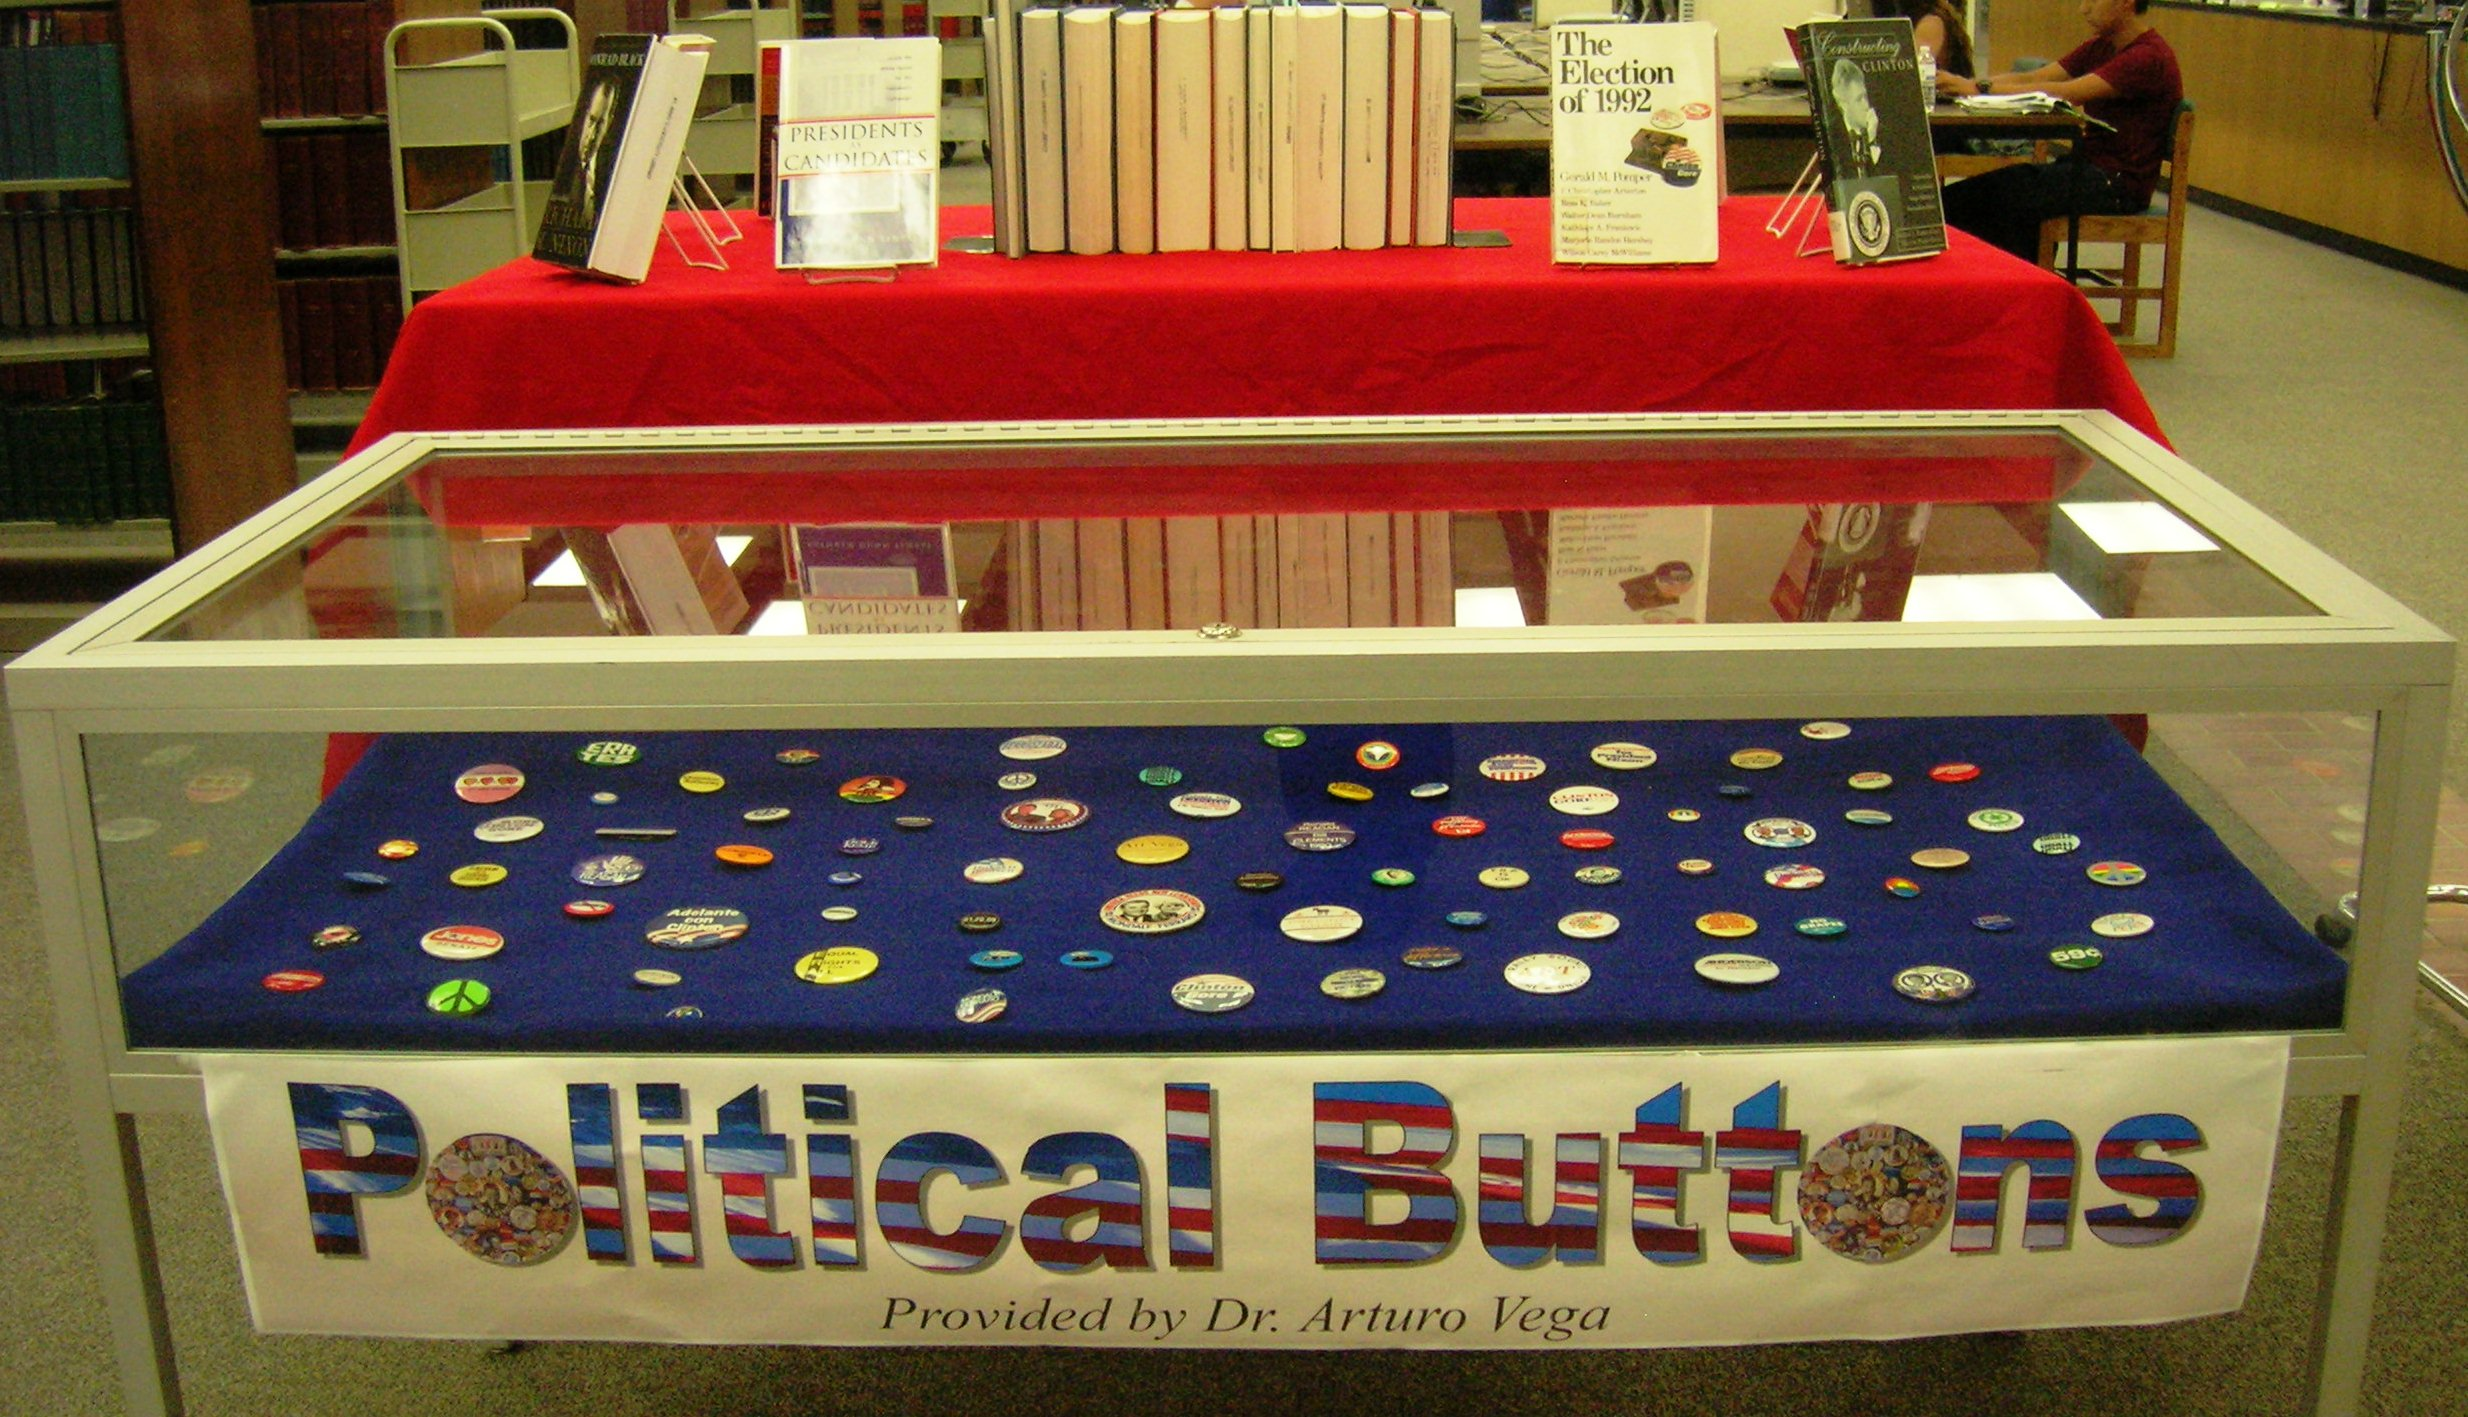 Political Buttons & Books